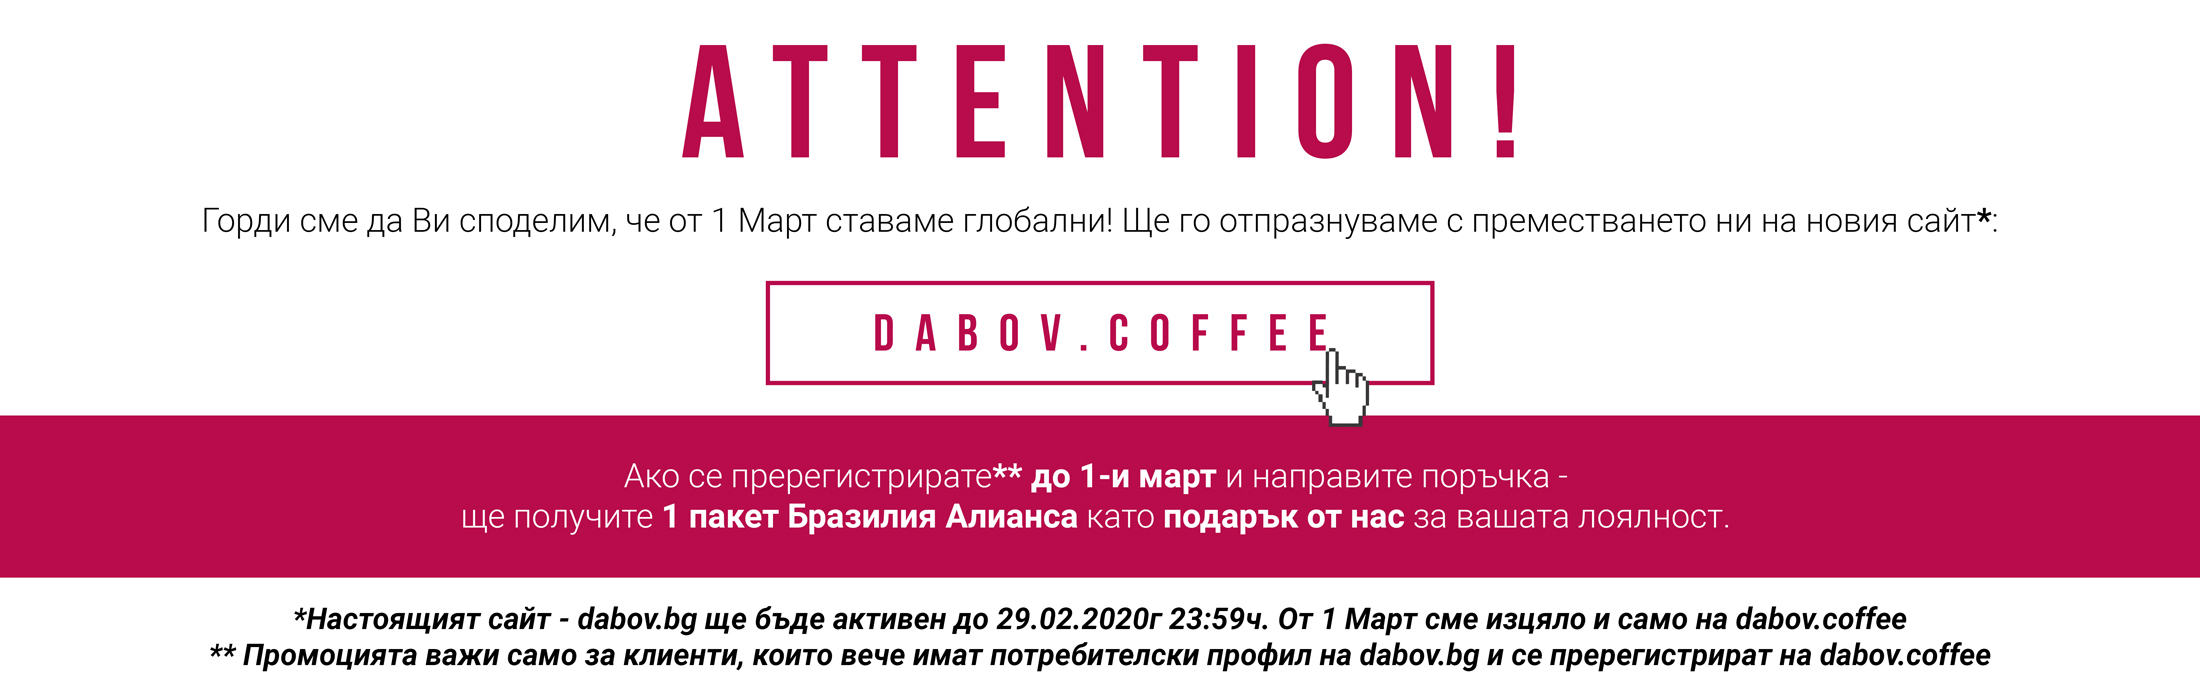 НОВ САЙТ - DABOV.COFFEE